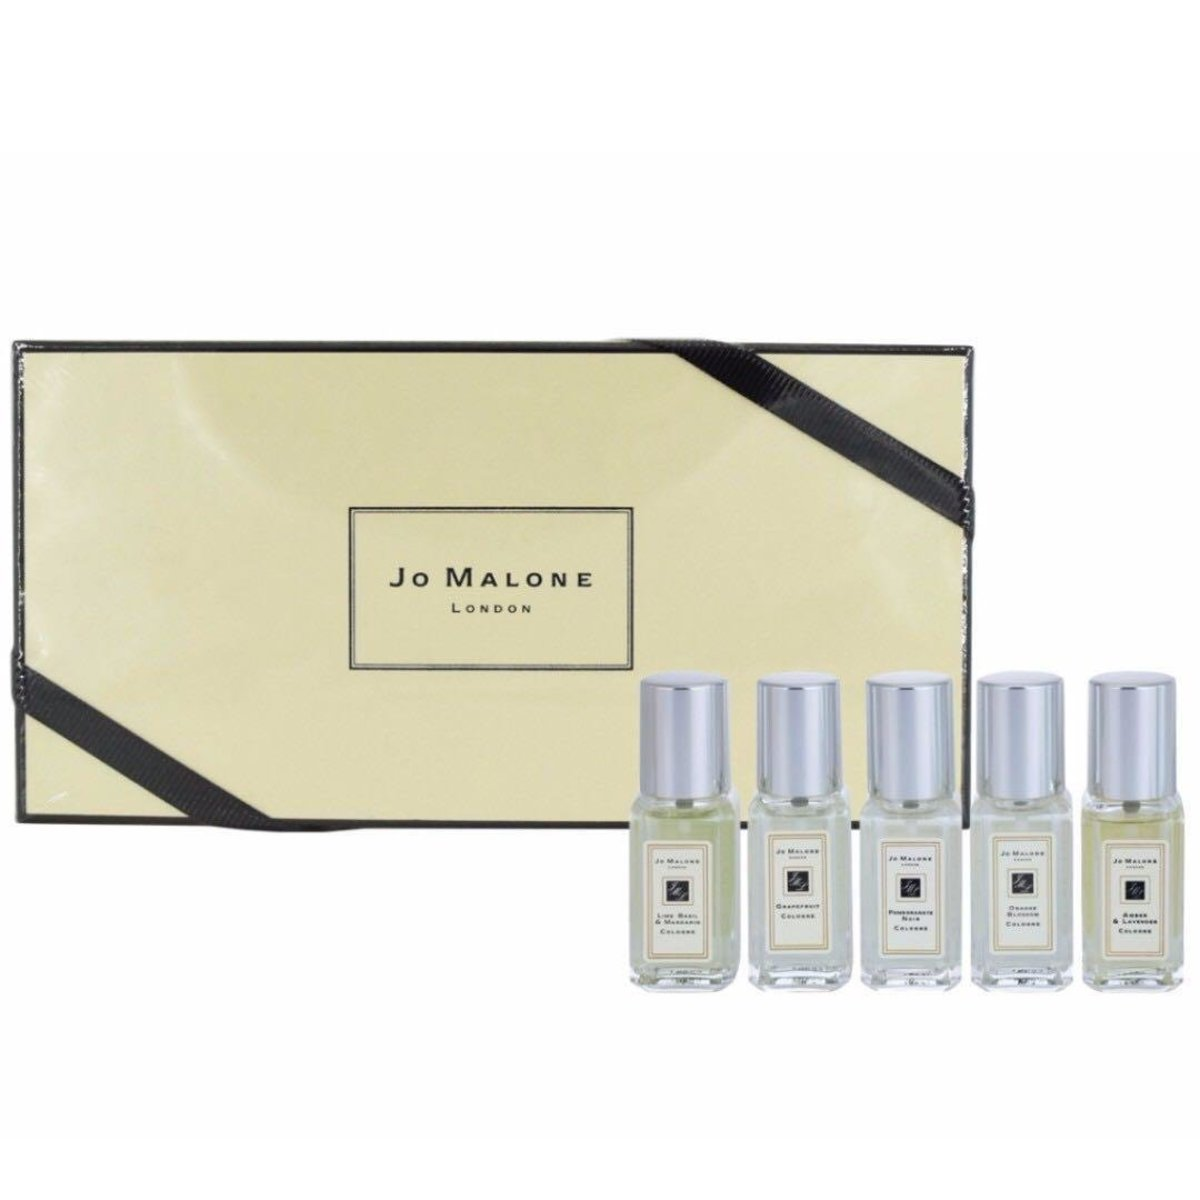 Jo Malone Cologne Collection 5pcs parallel